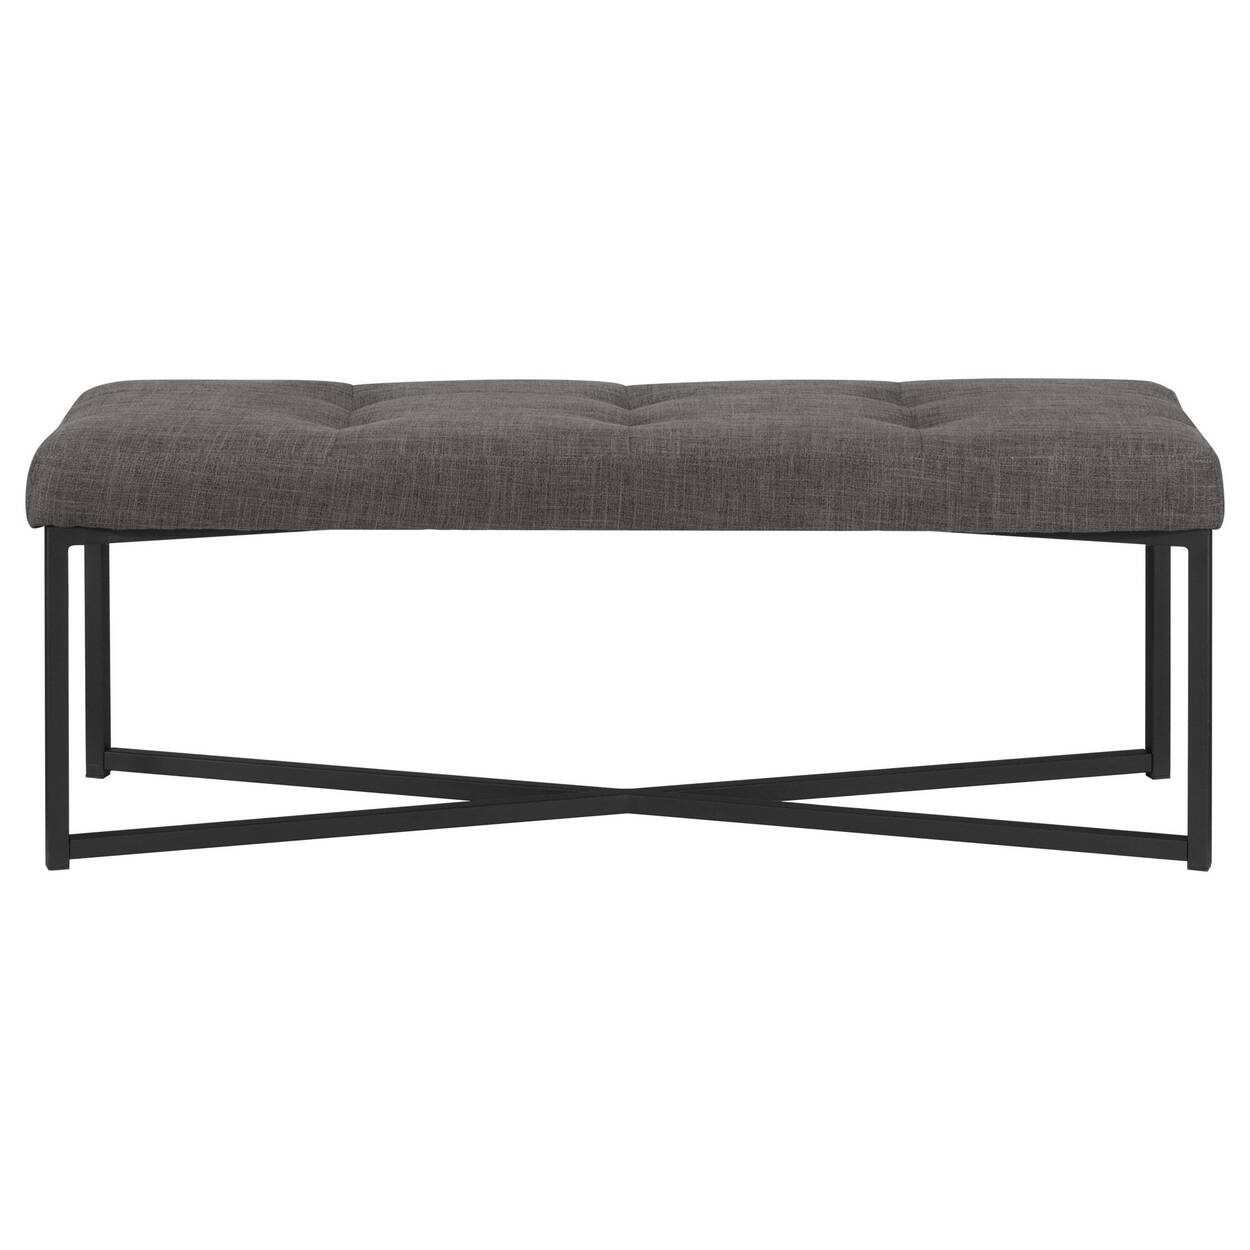 Tufted Chita Fabric and Metal Bench